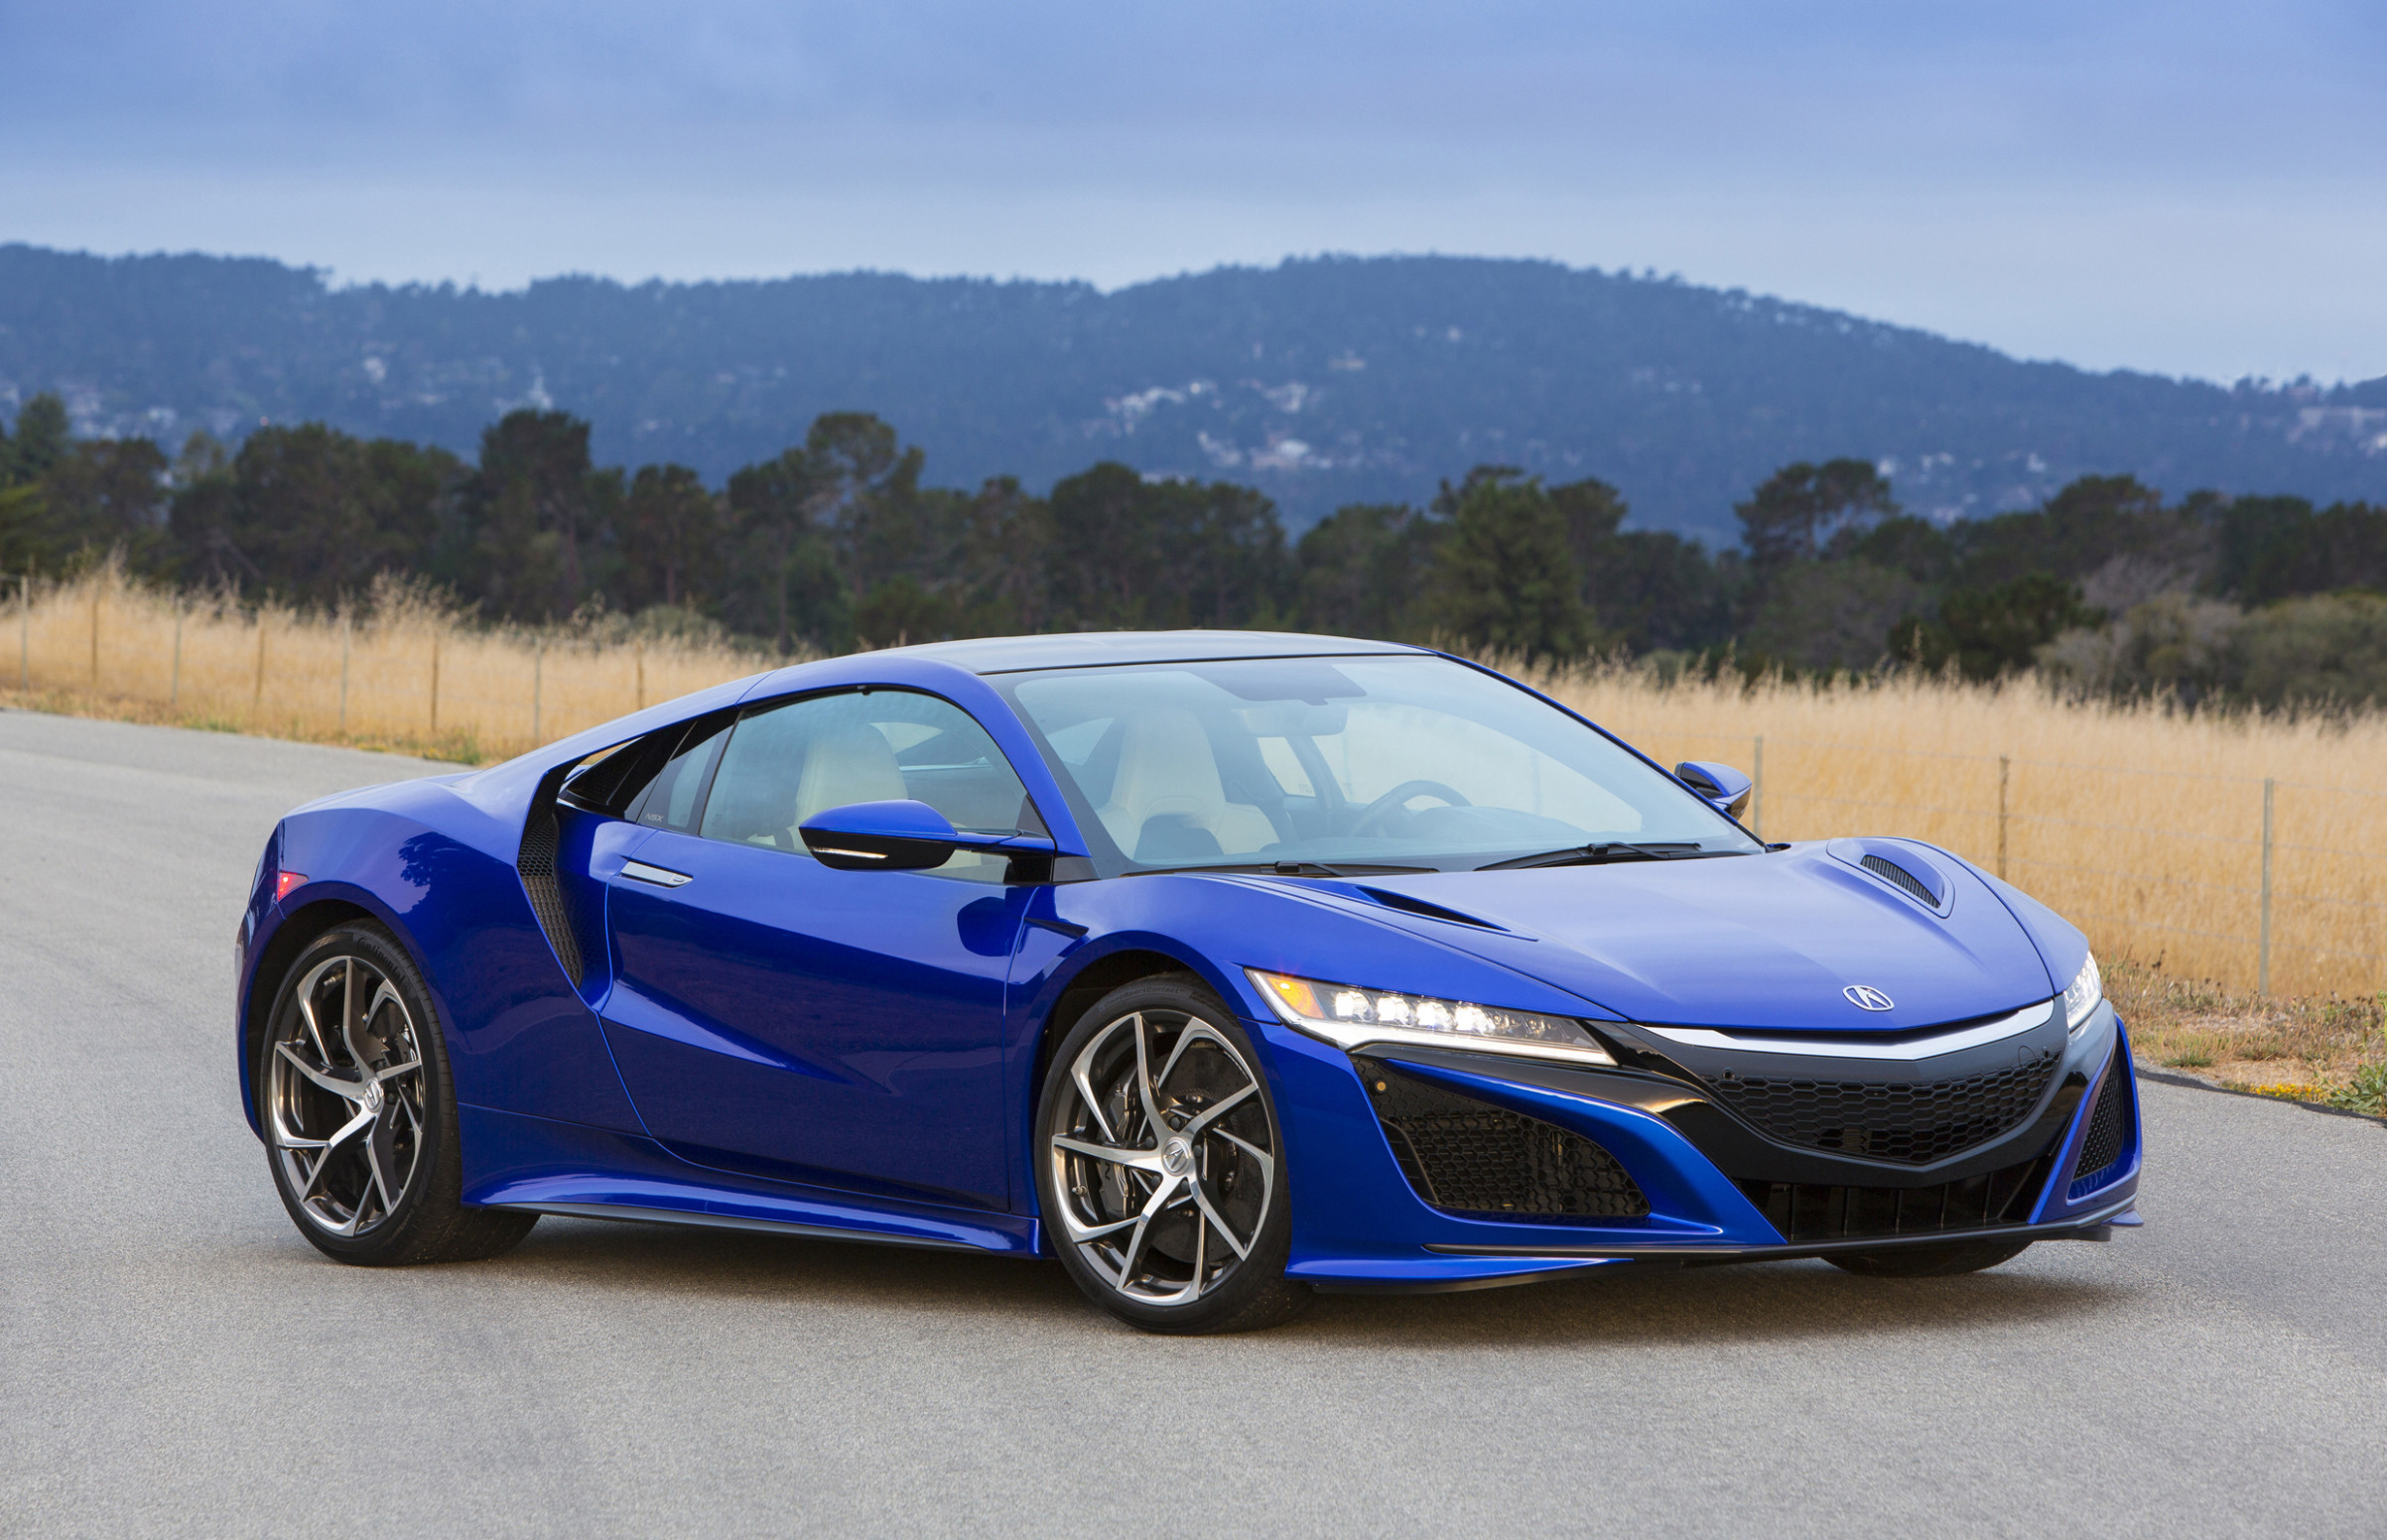 Acura NSX 10 - View Specs, Prices, Photos & More | Driving - 2020 acura nsx horsepower